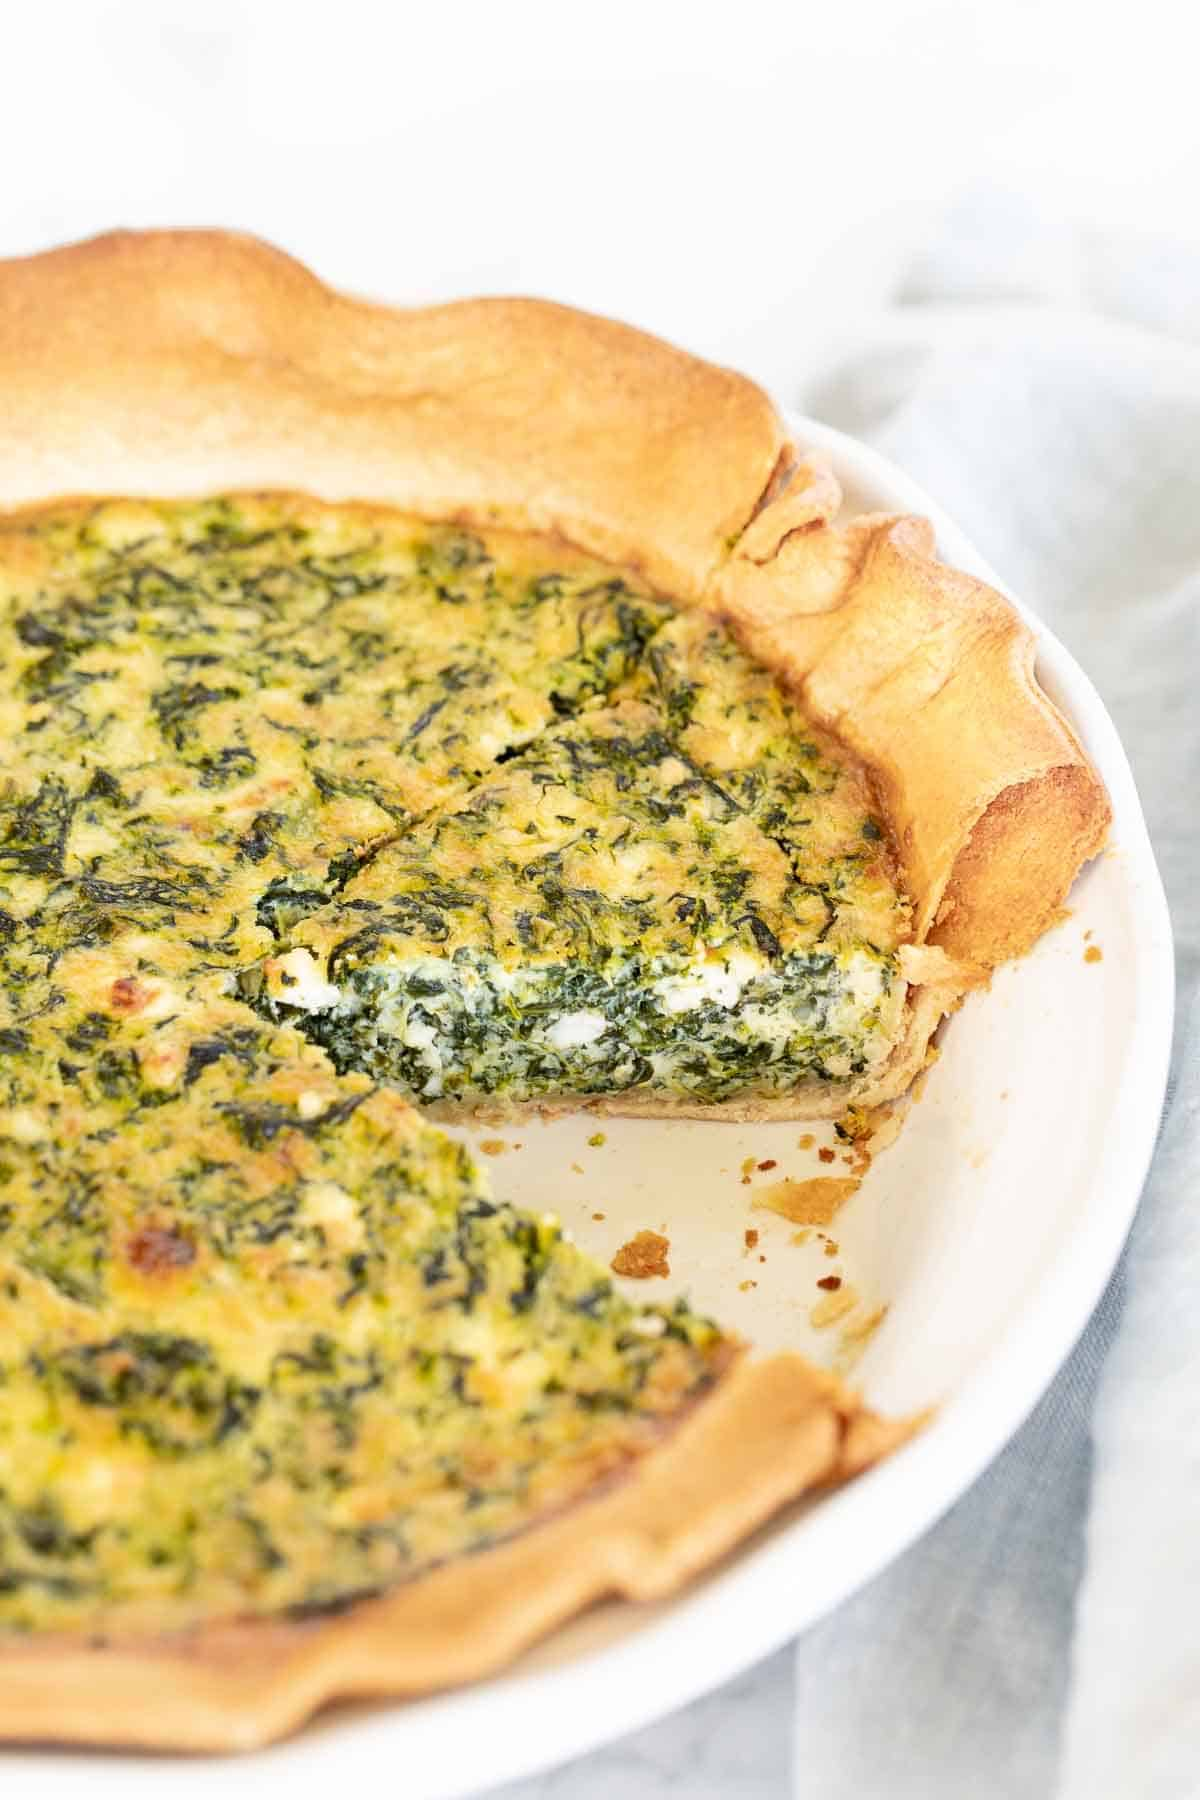 A spinach and feta quiche in a white pie dish, one slice removed.